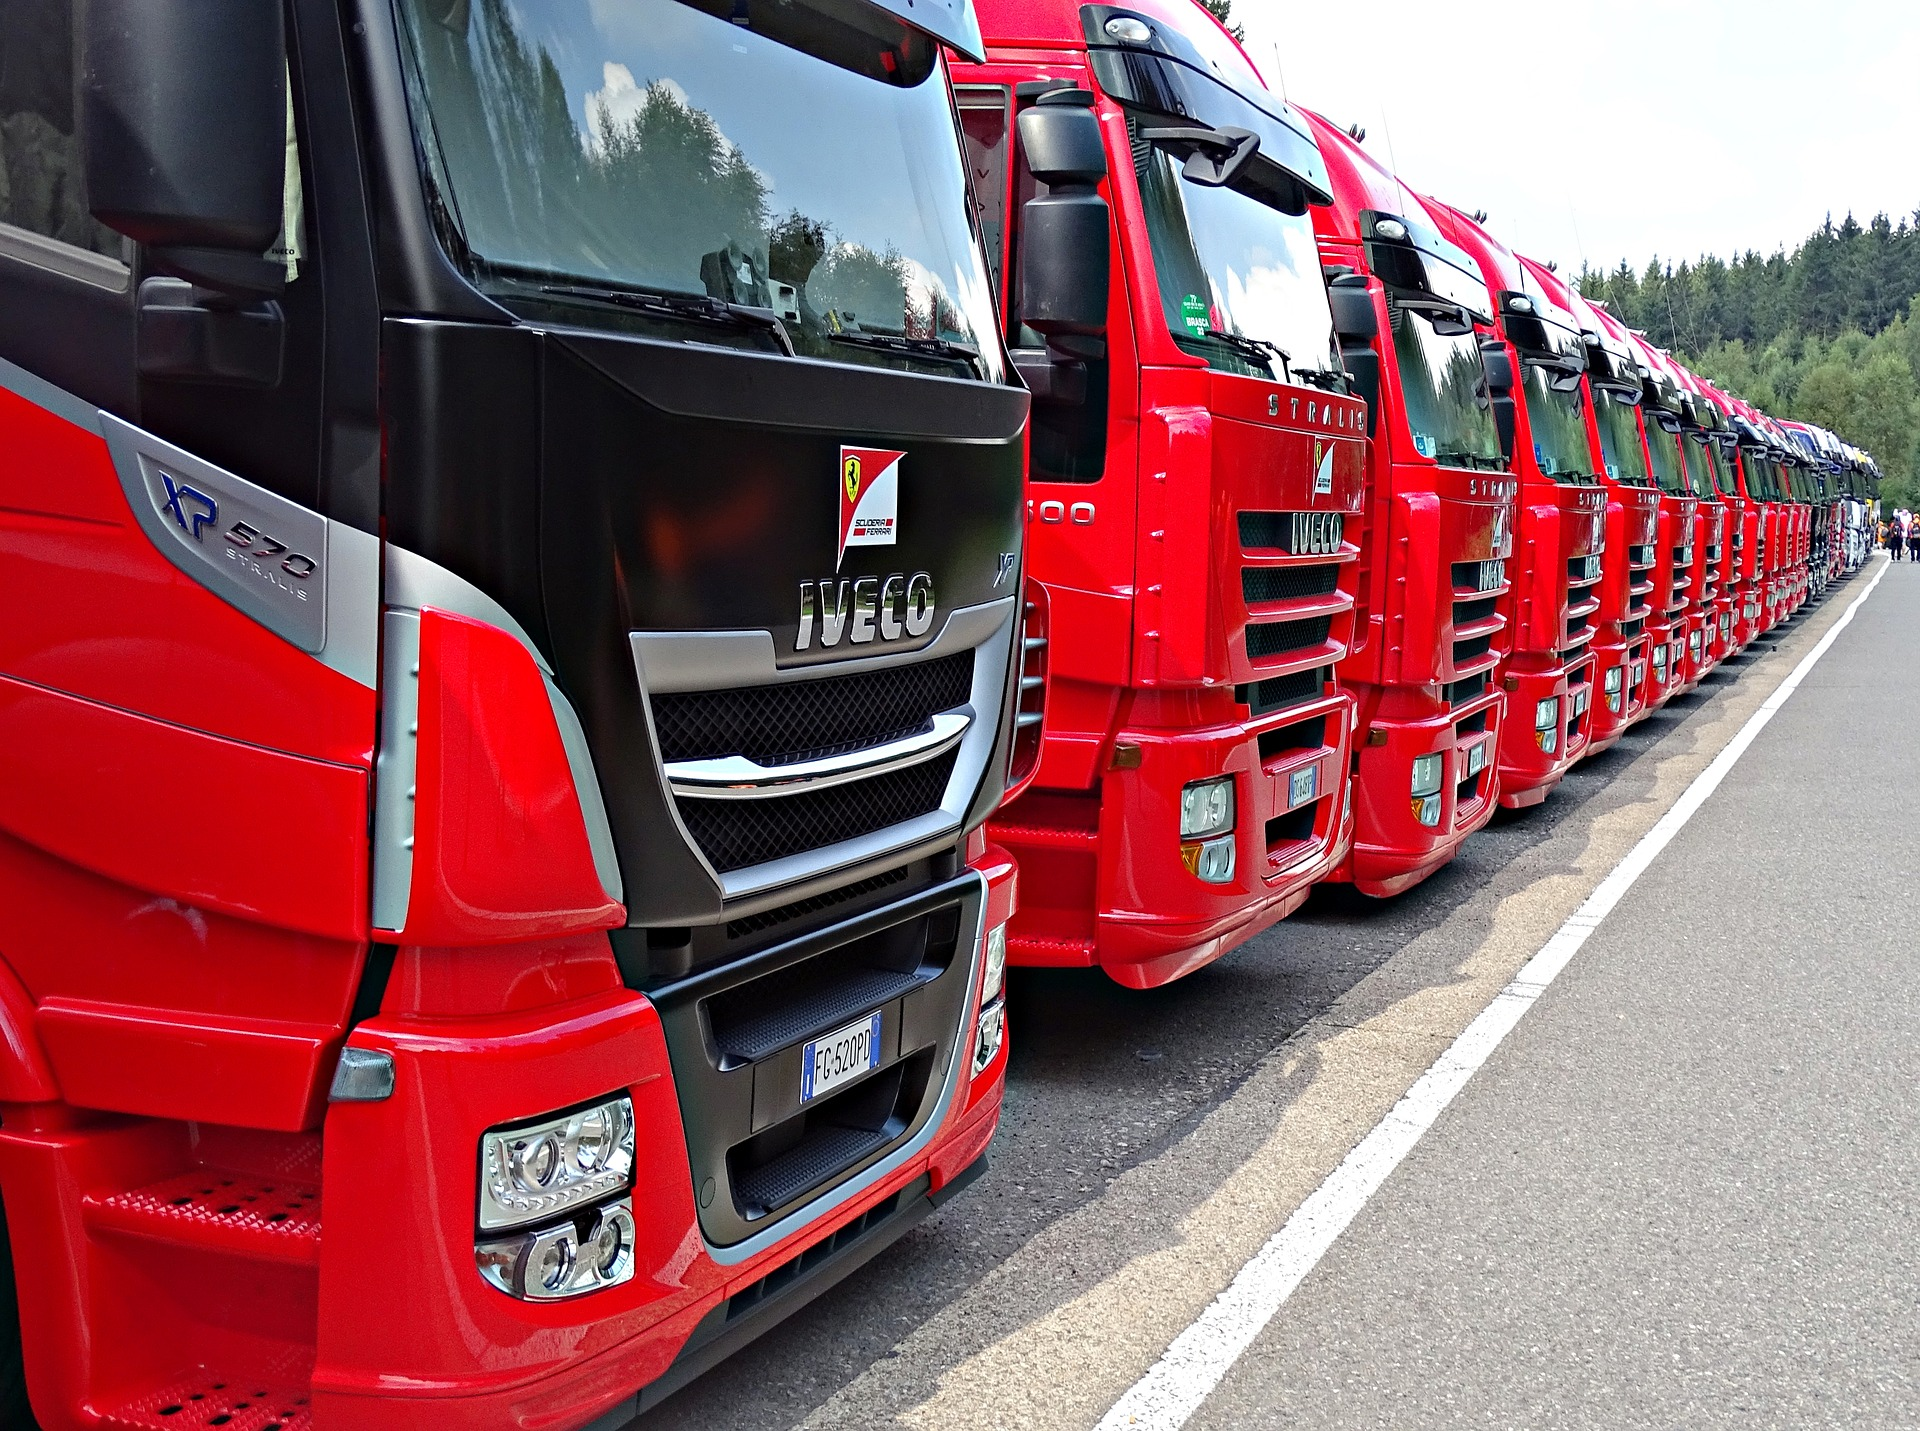 OUR VEHICLES - We have a full fleet of vehicles from small vans to articulated trucks, all of which have the latest satellite navigation and trackers installed. We have access to a wide range of additional vehicles of all types to suit your needs.